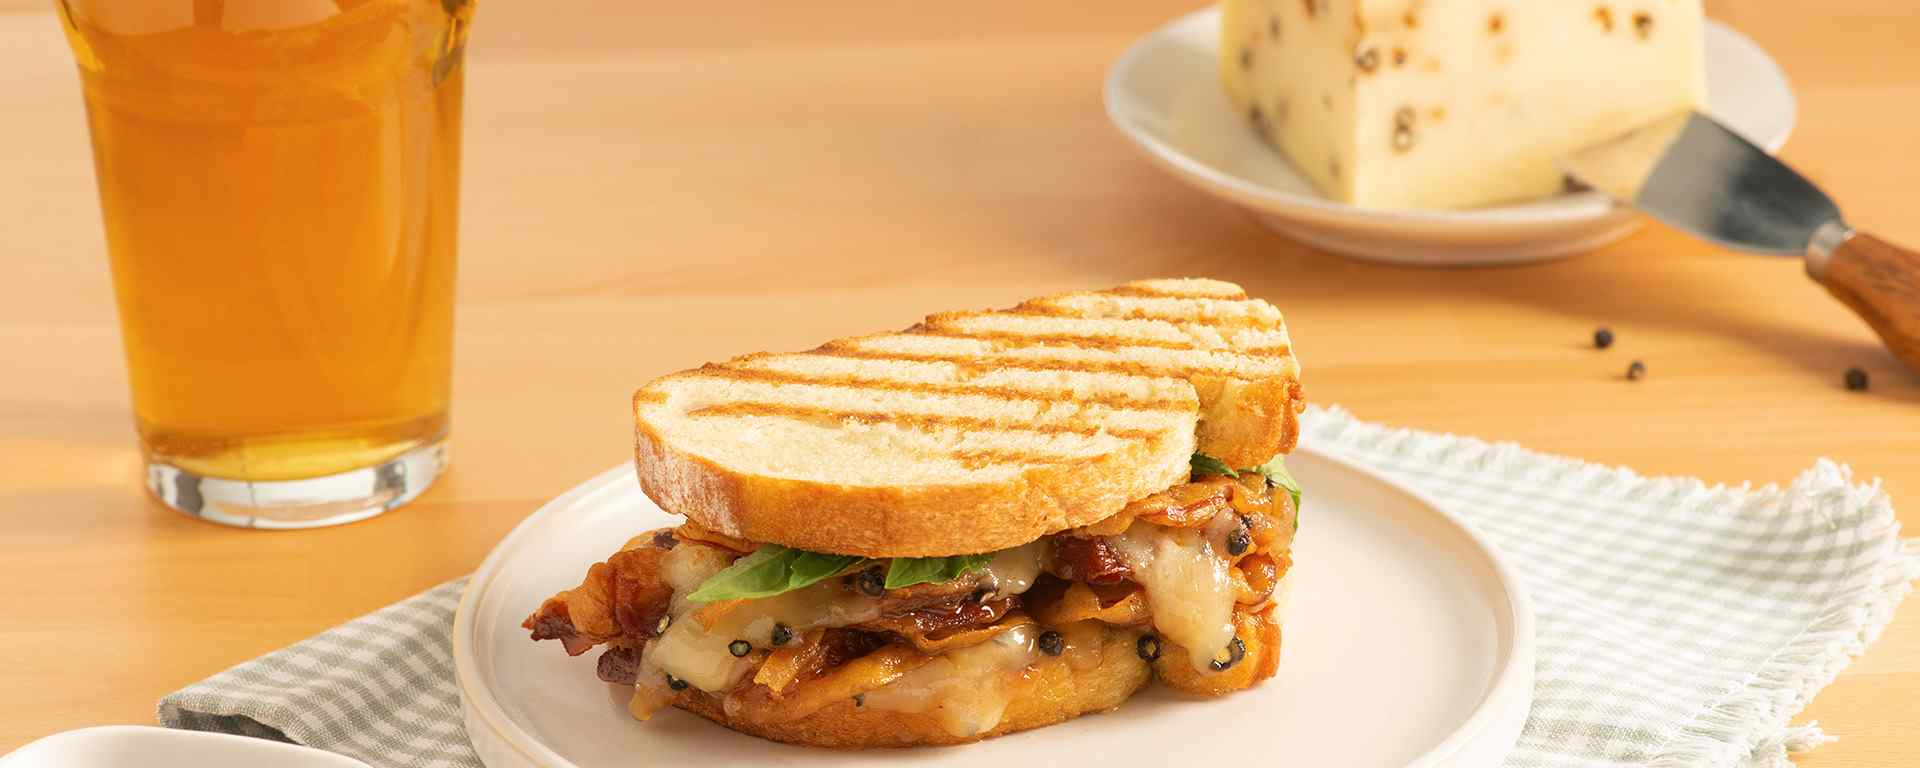 Photo for - Peppery Italian Grilled Panini with Balsamic Marmalade